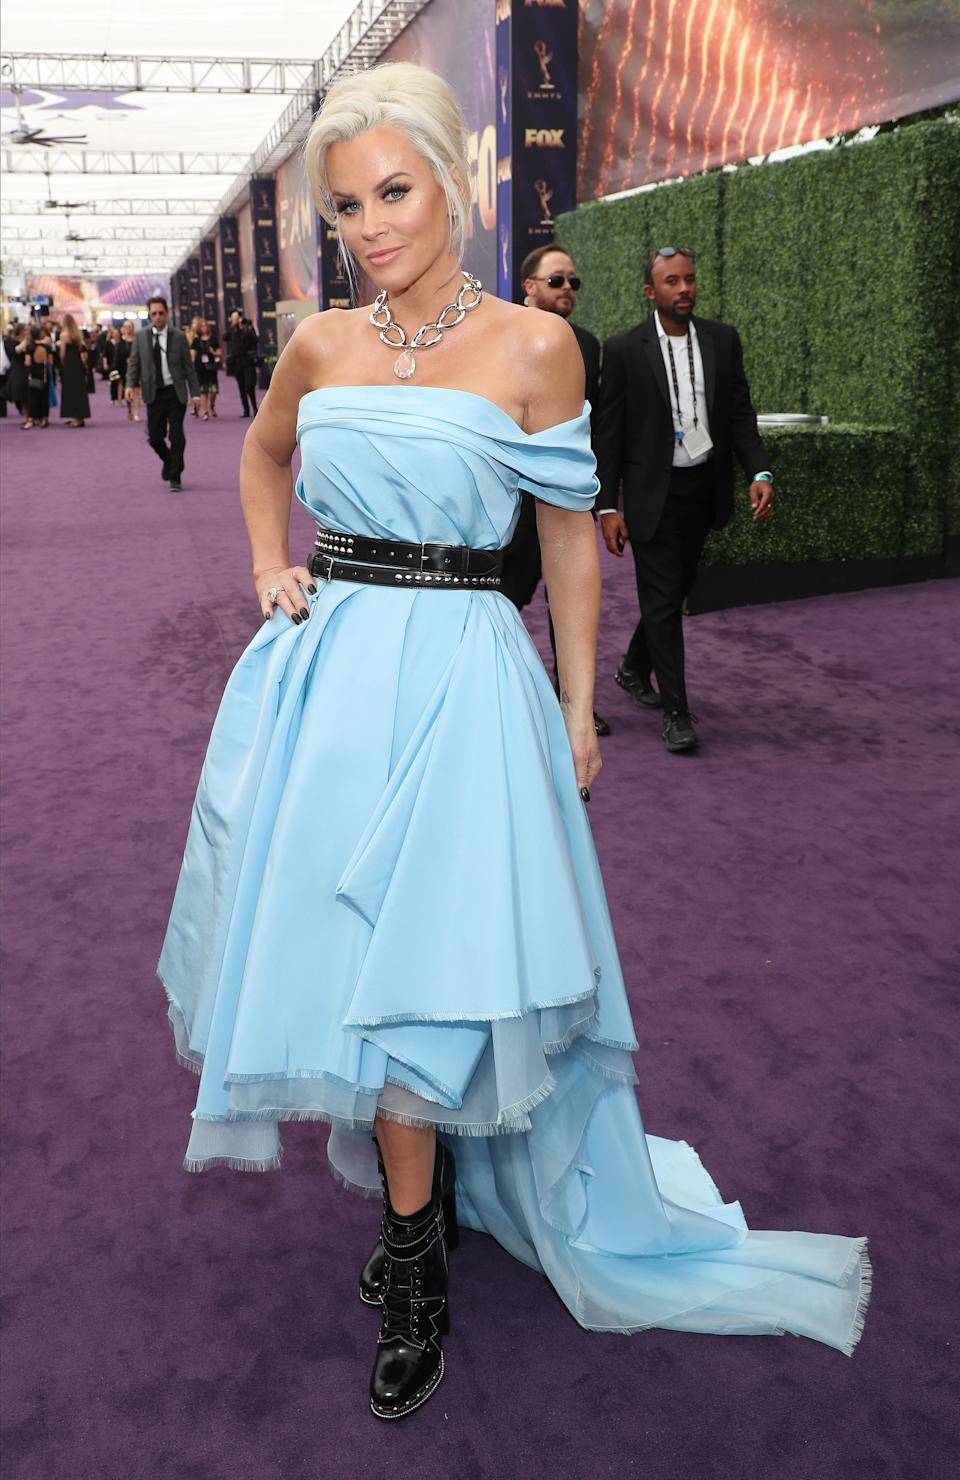 <p>In 2019, Jenny McCarthy added a punk-princess twist to her off the shoulder blue gown that looked more like a D.I.Y. project gone wrong rather than an Emmy worthy look (Image via Getty Images).</p>